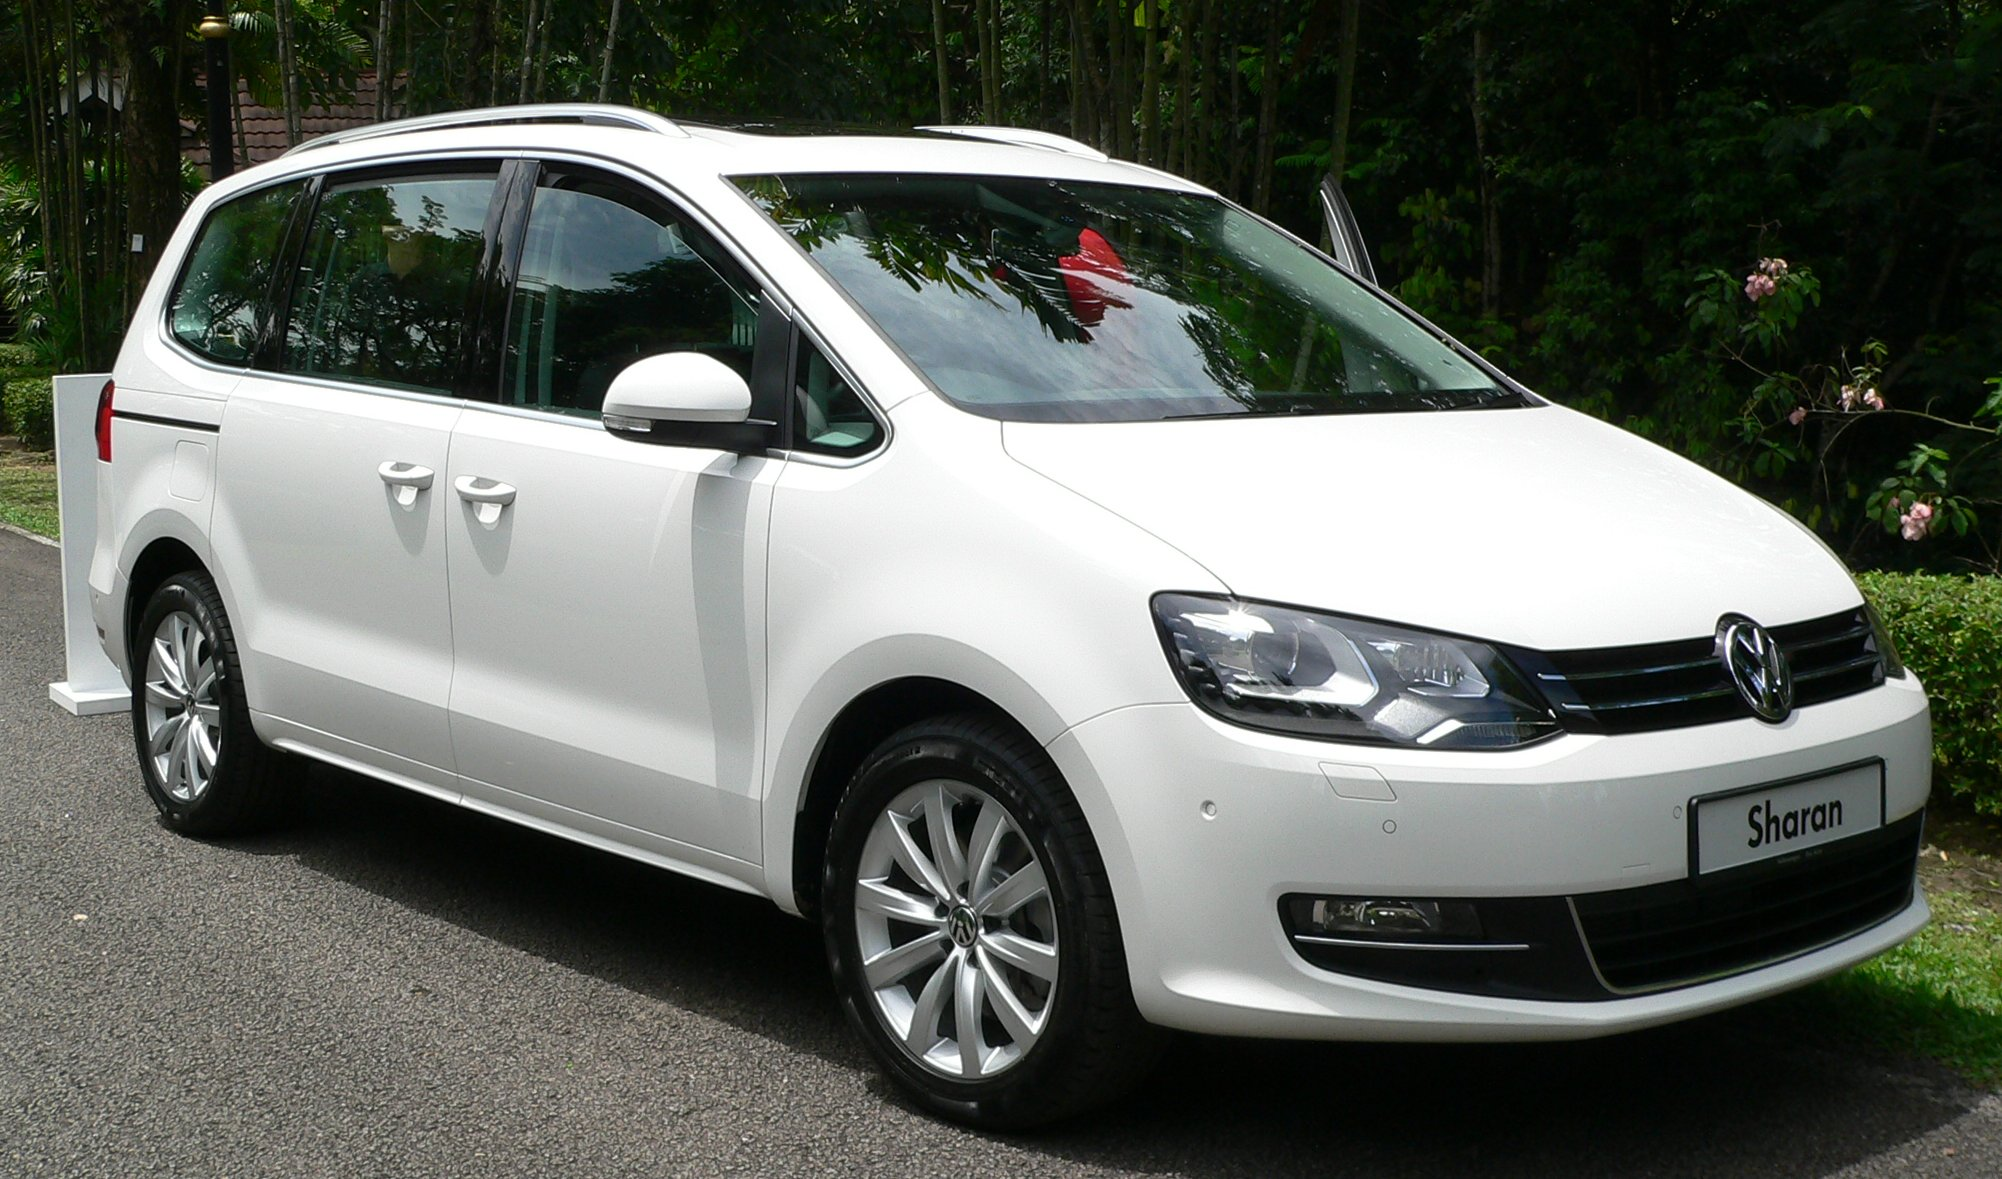 Vw Transmission For Sale >> Volkswagen Sharan launched - 7-seater rolls in at RM245k